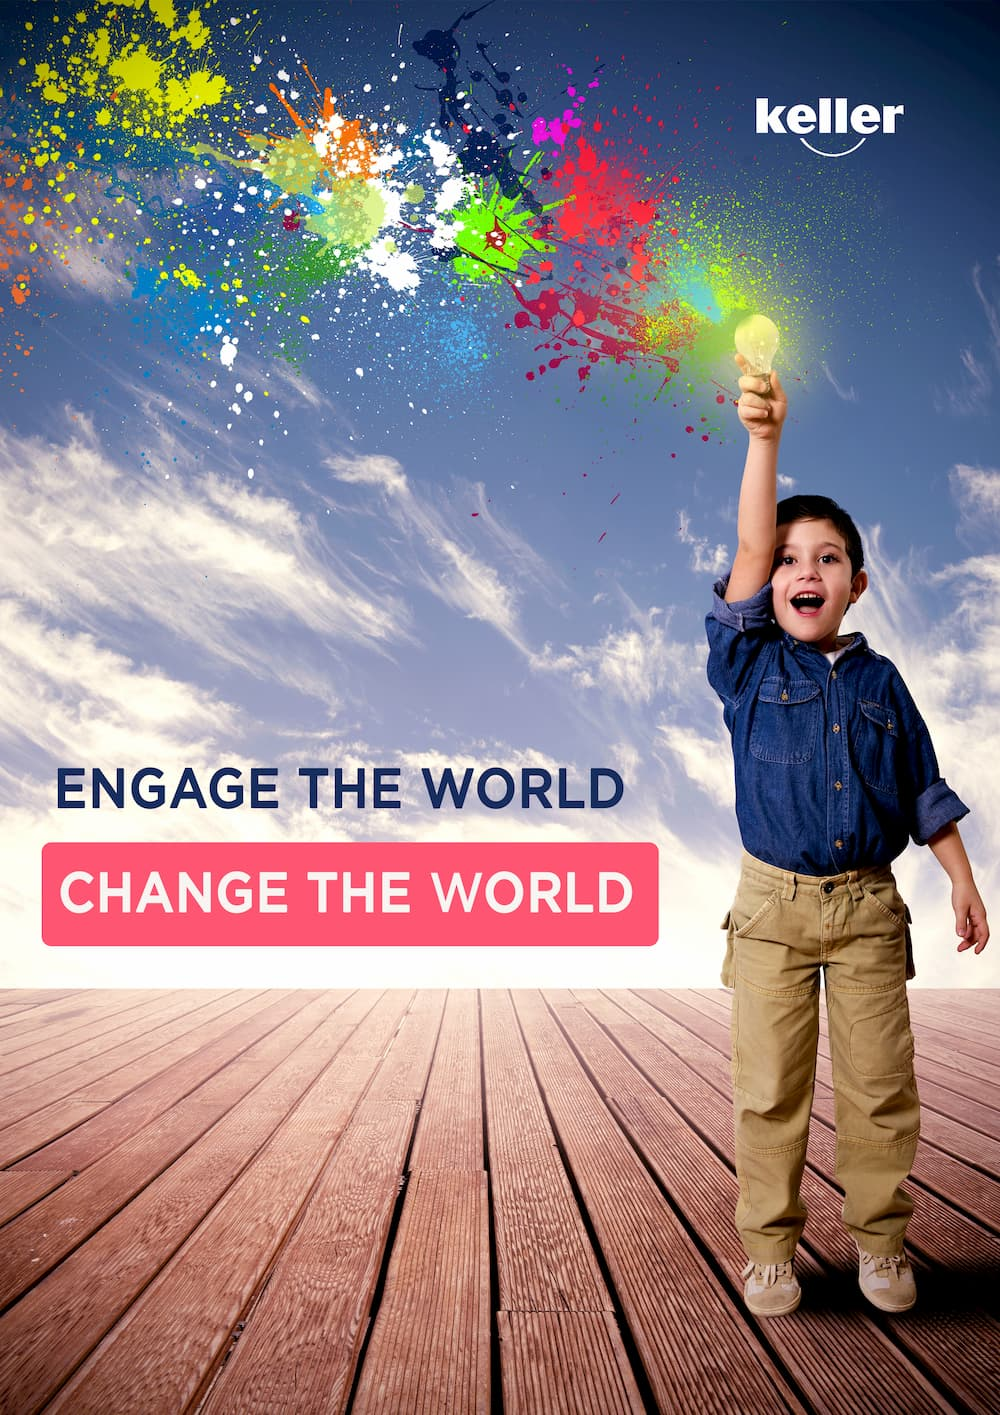 keller education - engage the world